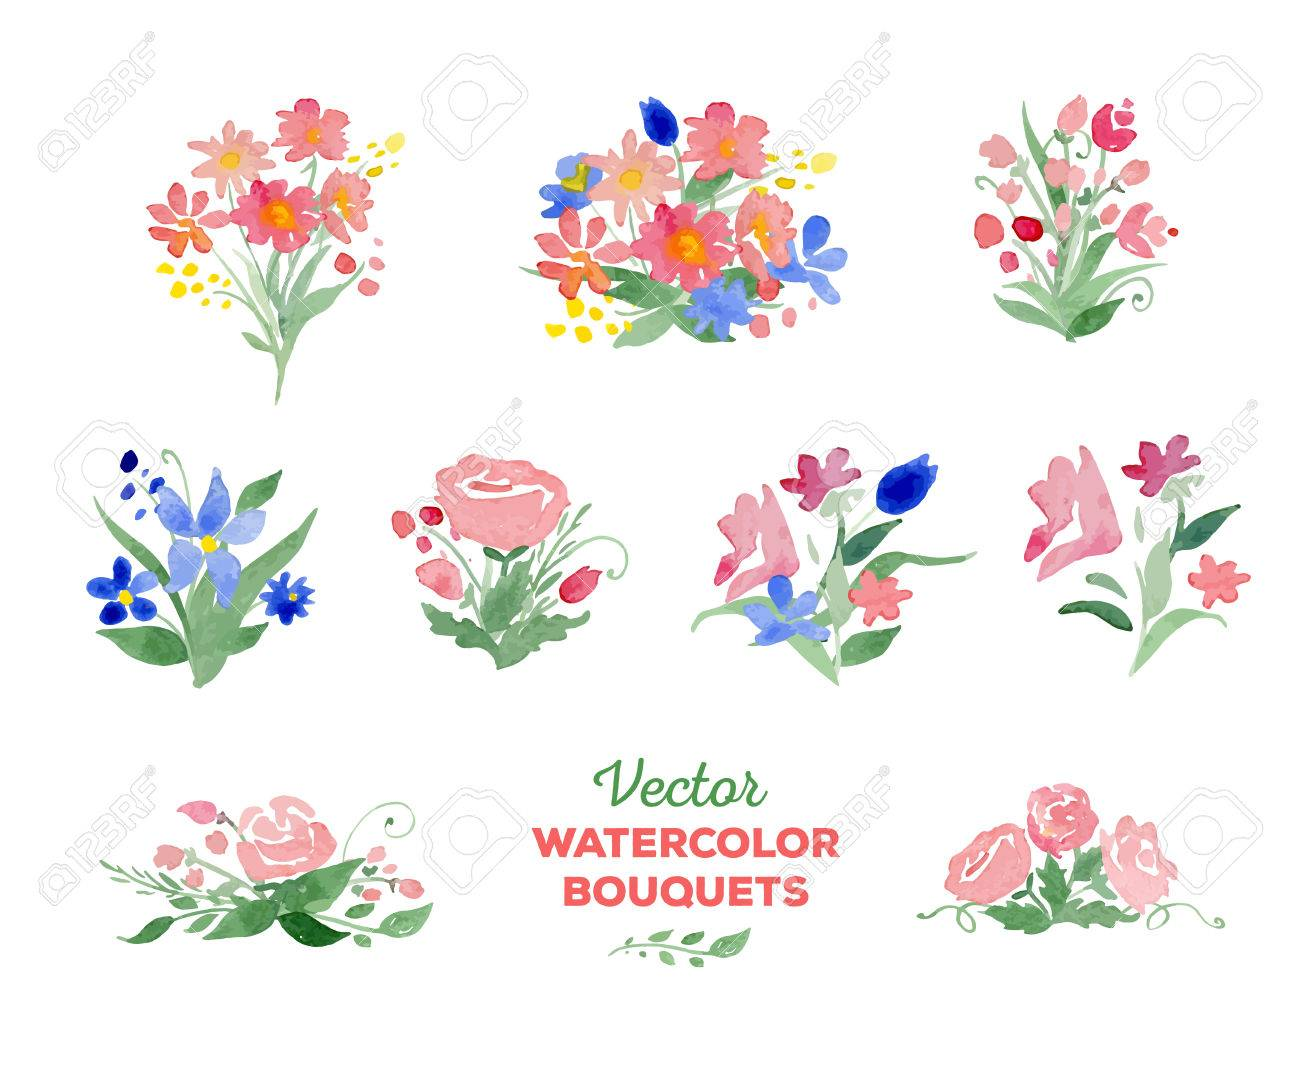 watercolor floral bouquets great for wedding and birthday